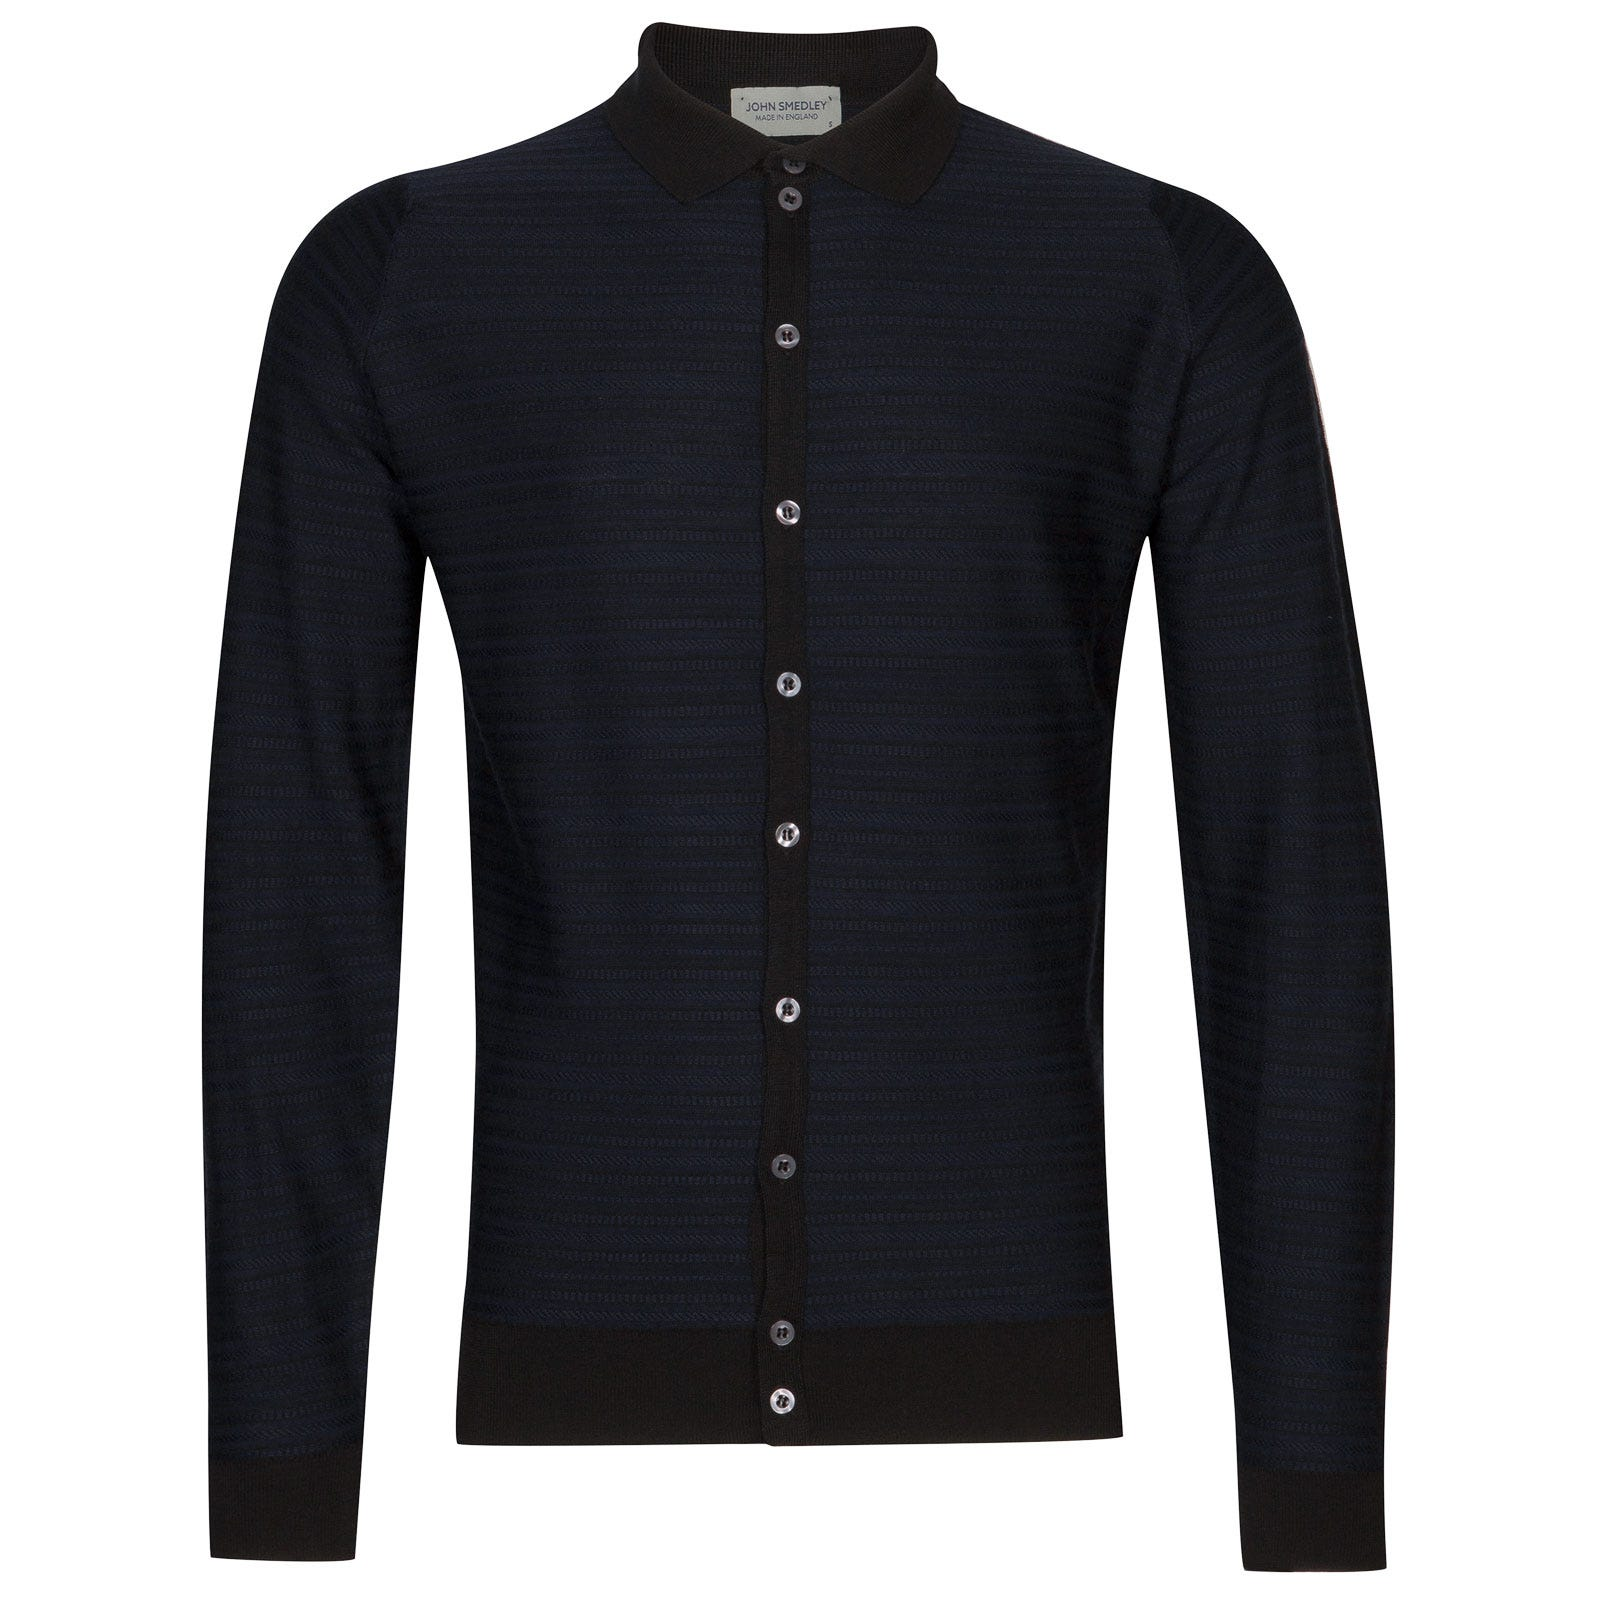 John Smedley hemlock Merino Wool Shirt in Black/Midnight-XL